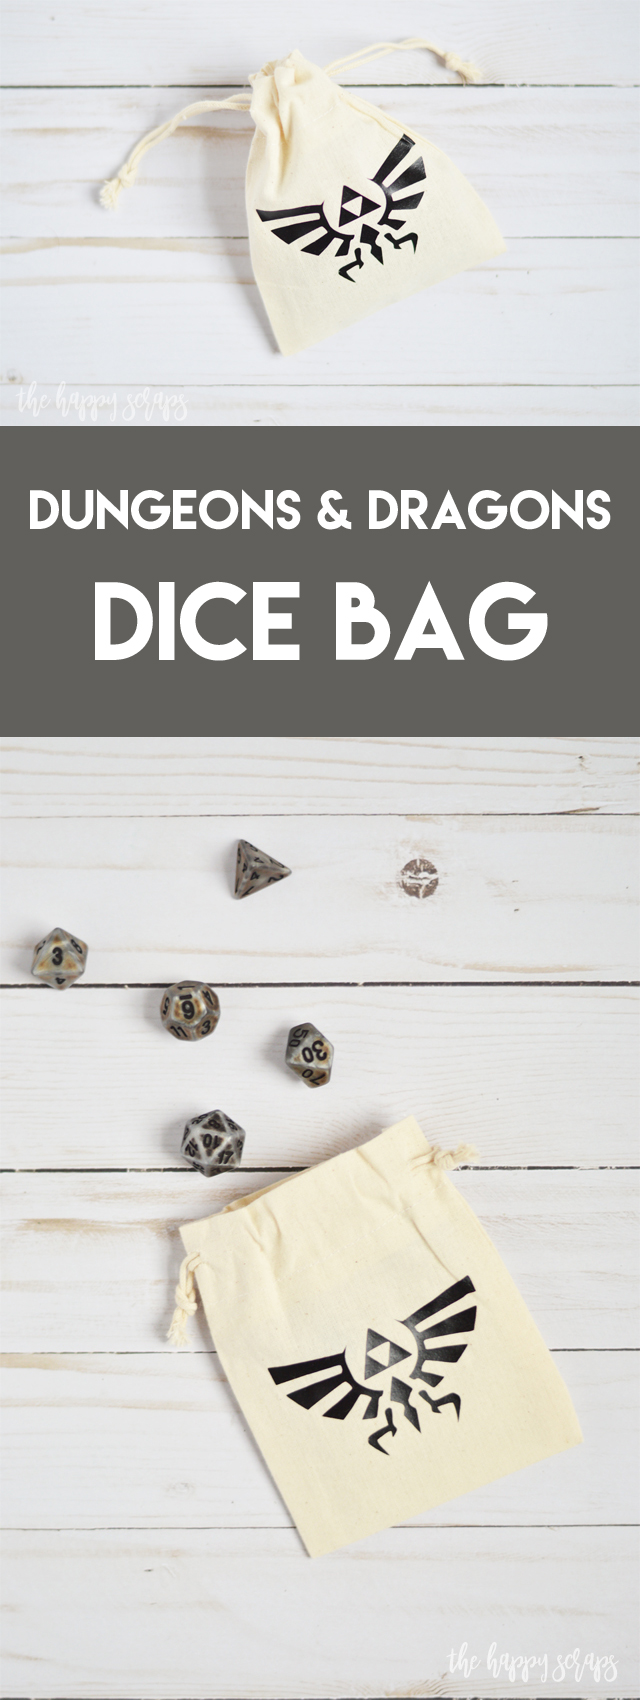 This Dungeons & Dragons Dice Bag is super simple and fast to make! Get all the details in the post. It would make a great gift as well!